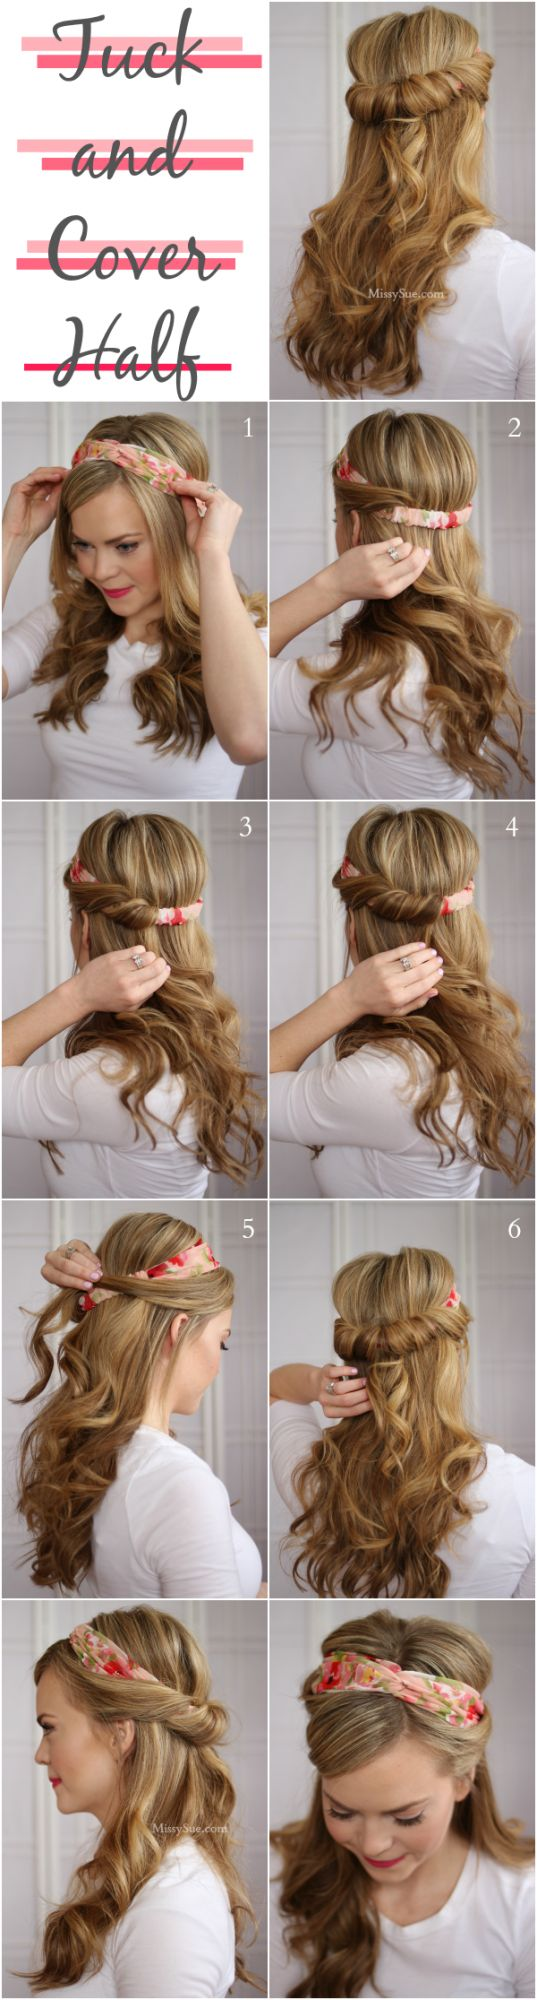 For most women, they would not have enough time to take care of our hairstyle every day. So we need some simple and easy but still look fabulous hairstyle ideas sometimes. If you always don't know how to deal with your hair before going out, this post will help you a lot with 18 cute …